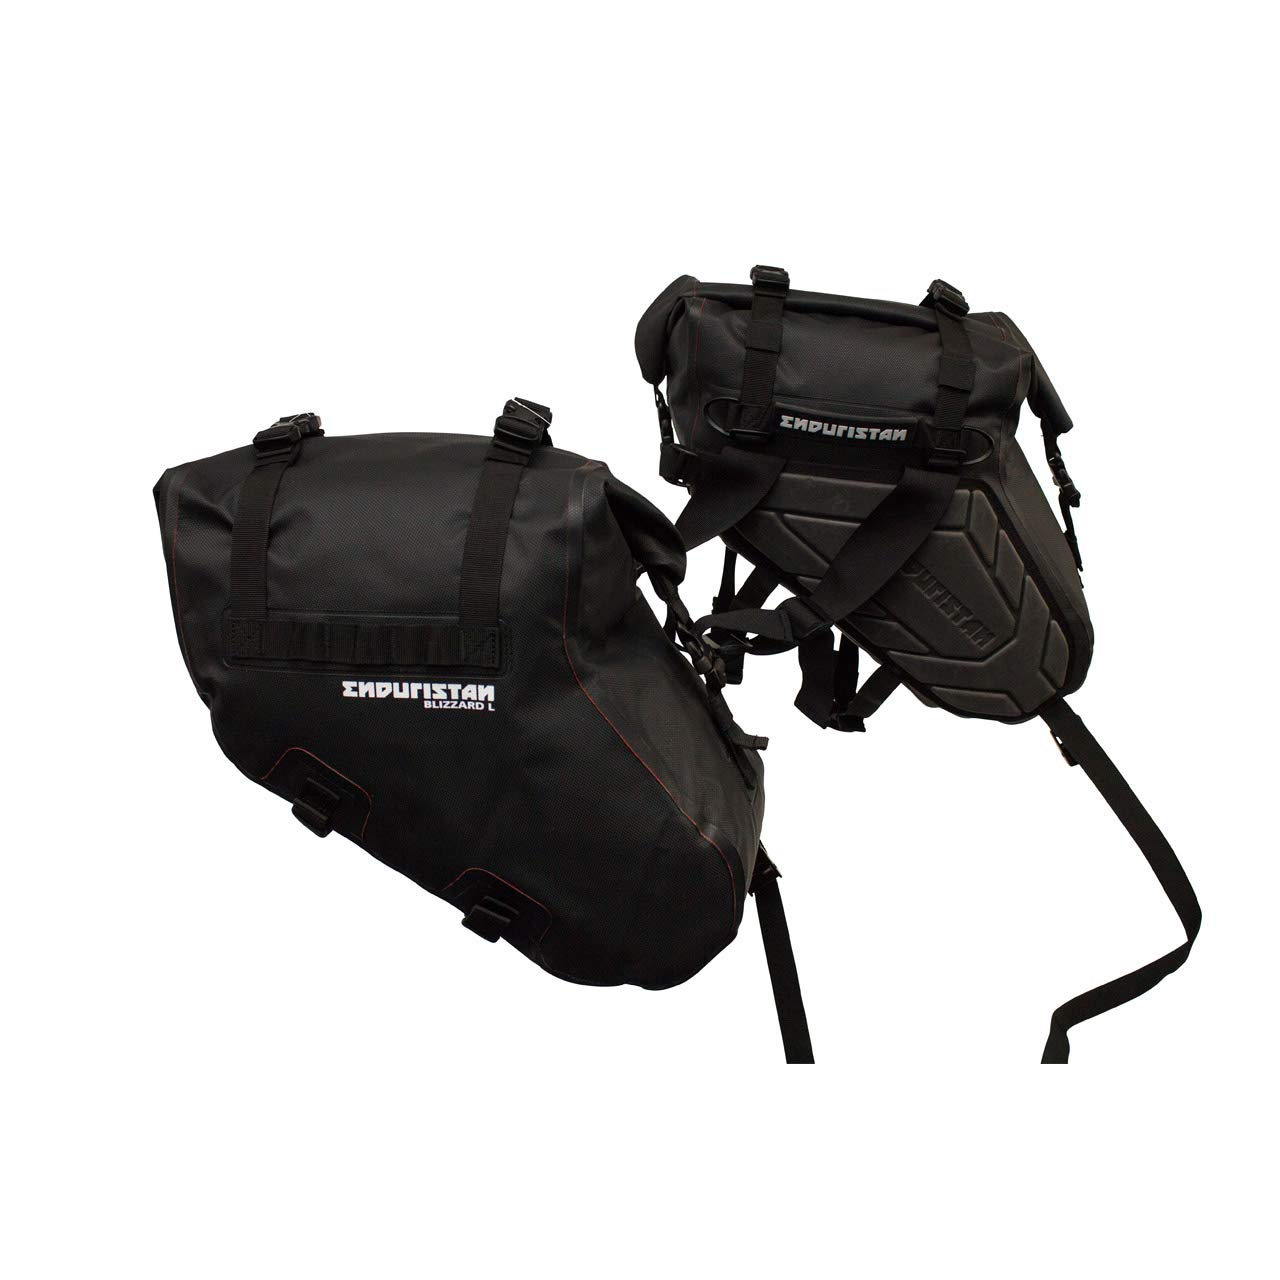 Volumen 2 x 8,5 Liter Size M ENDURISTAN Blizzard Saddle Bags Medium//Satteltaschen//Gep/äcksystem//Softbags 100/% Wasserdicht